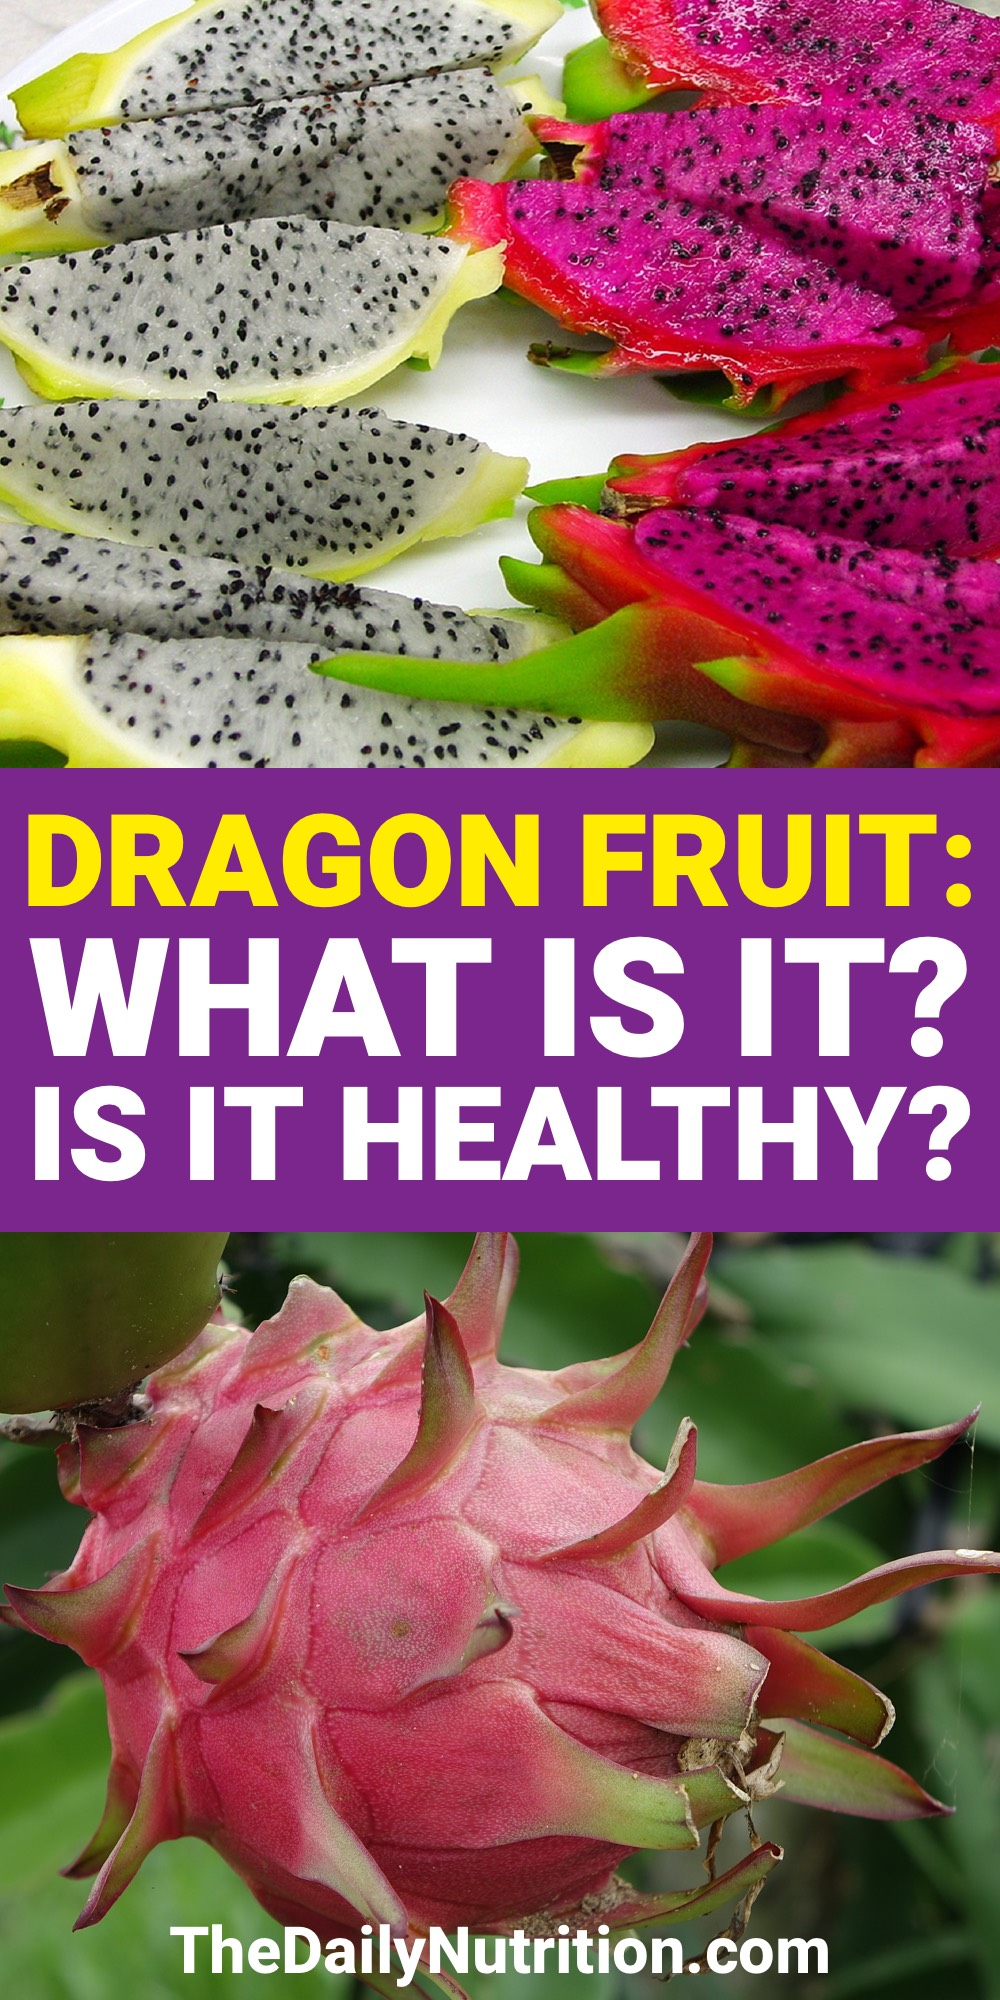 Dragon fruit benefits are very similar to other fruits even though it looks much different than other fruits. Find out what these dragon fruit benefits are here.